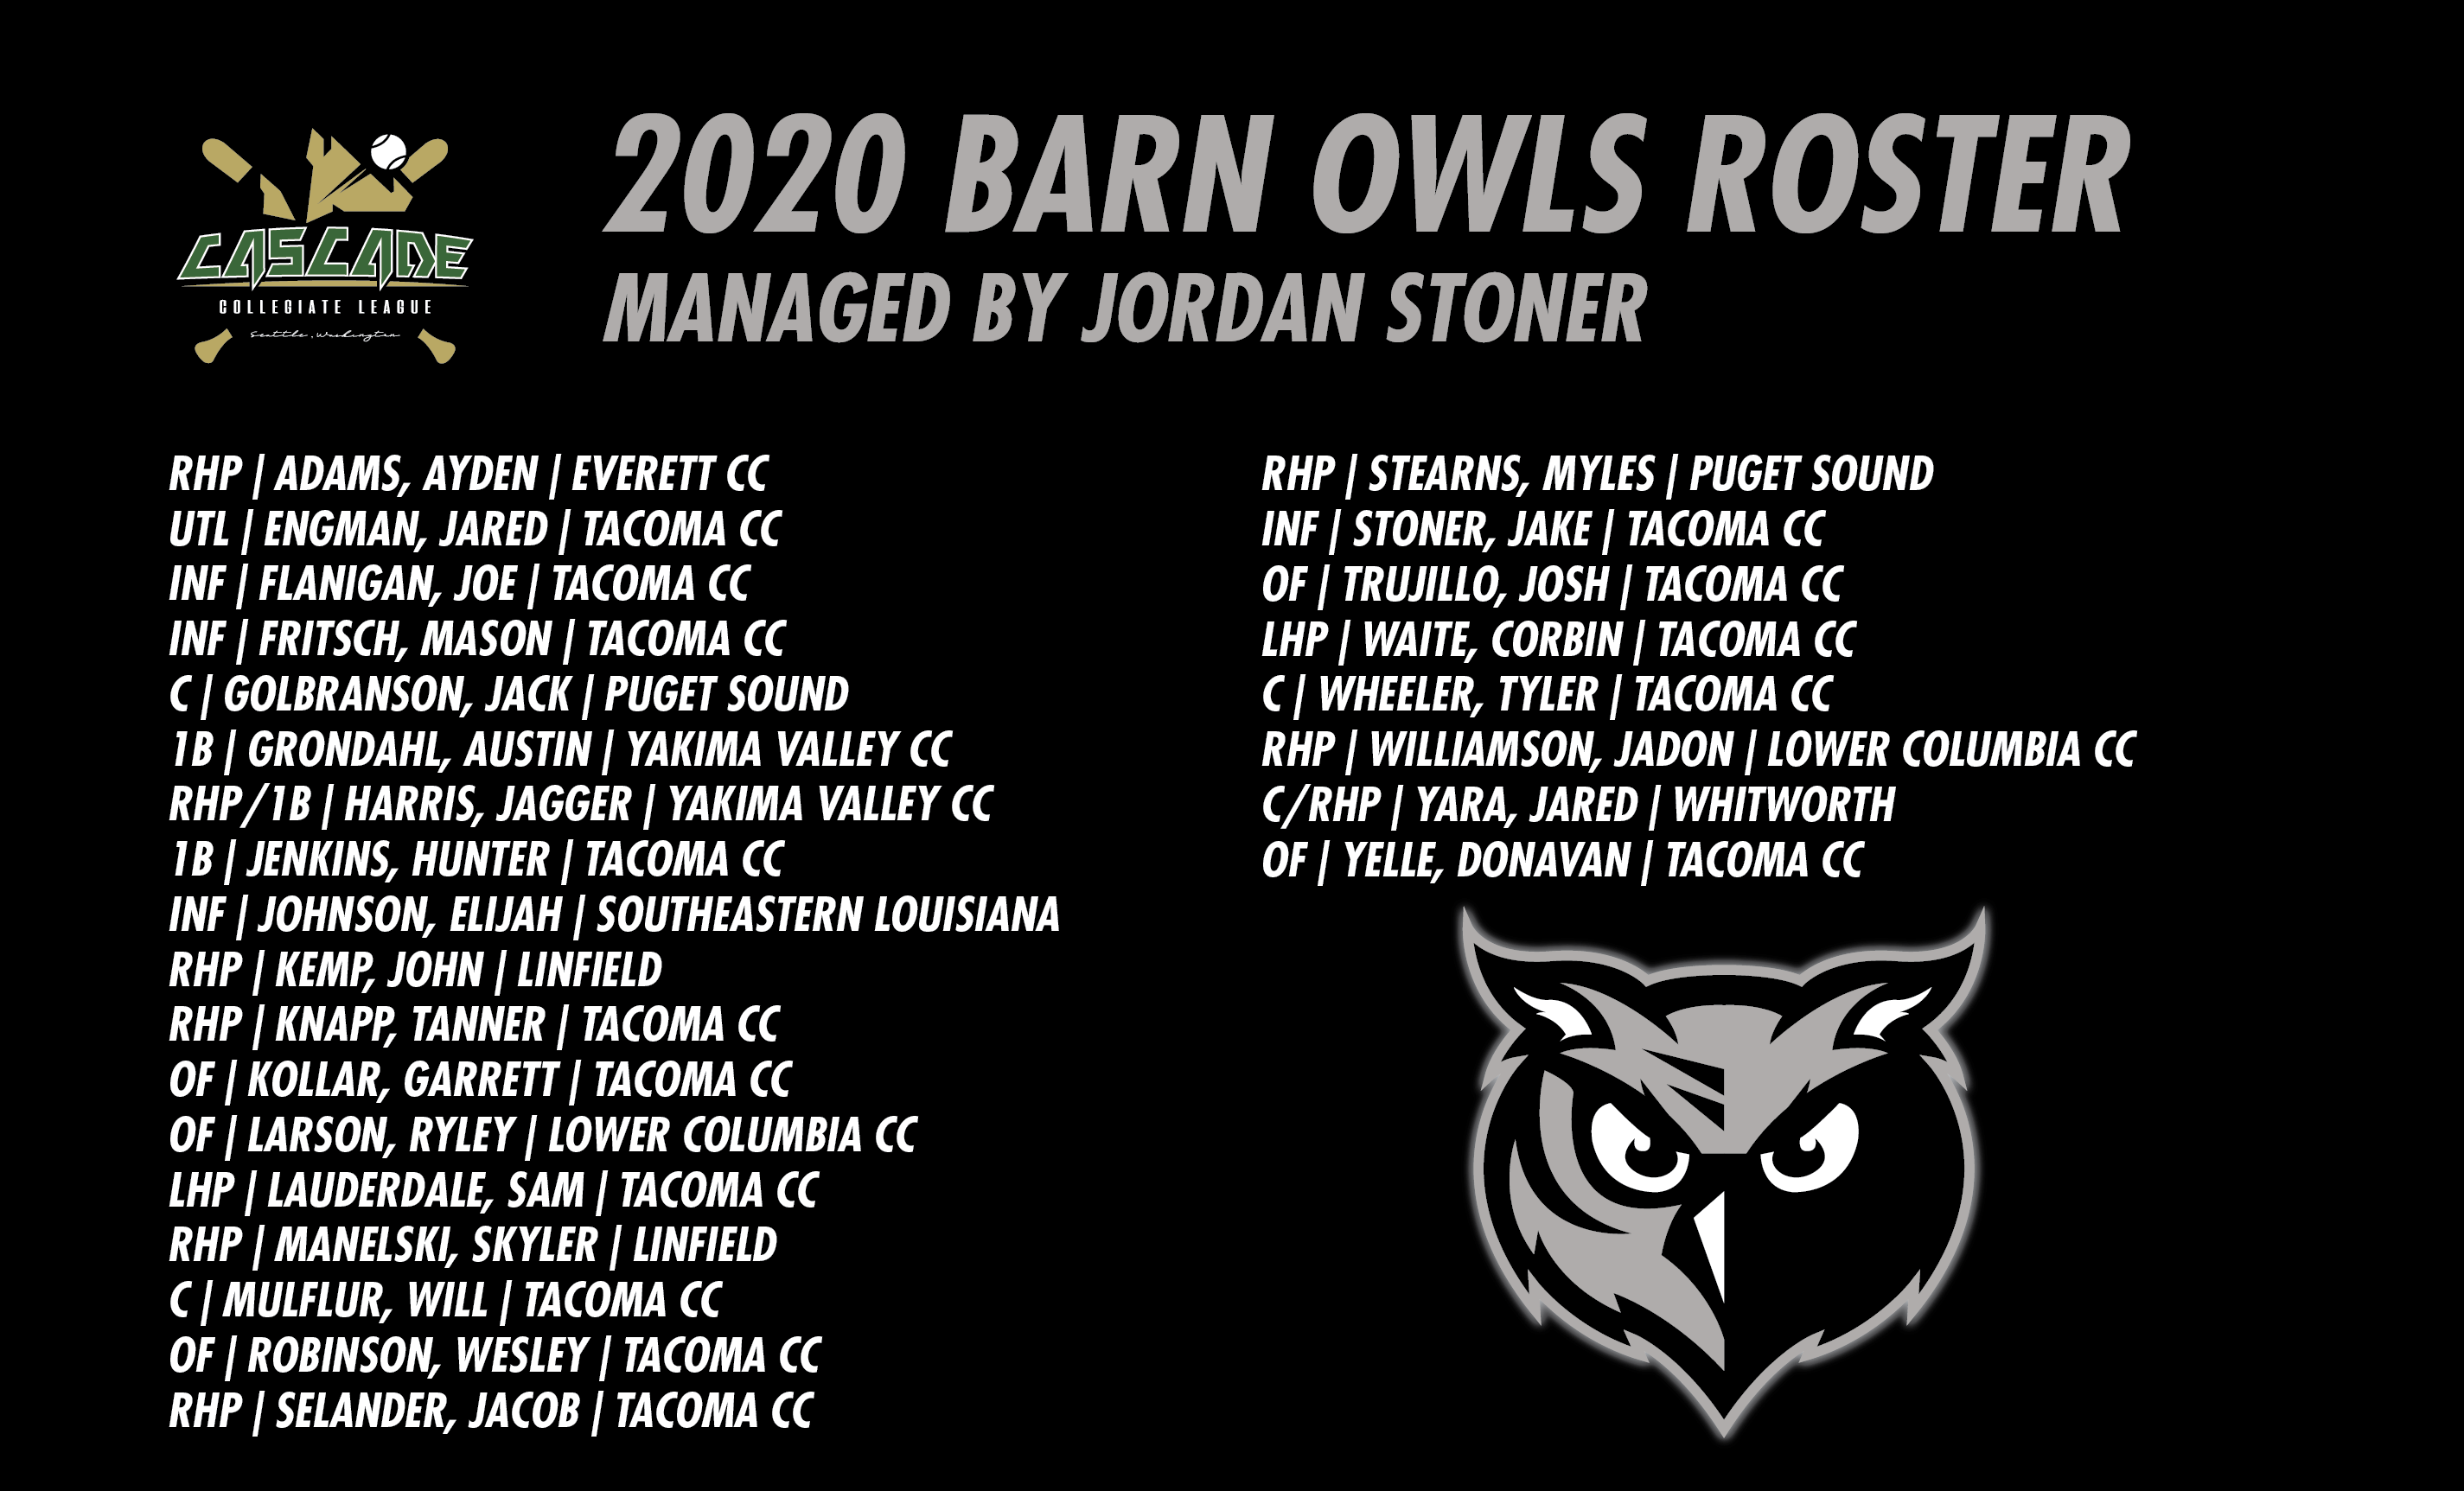 2020 BARN OWLS ROSTER